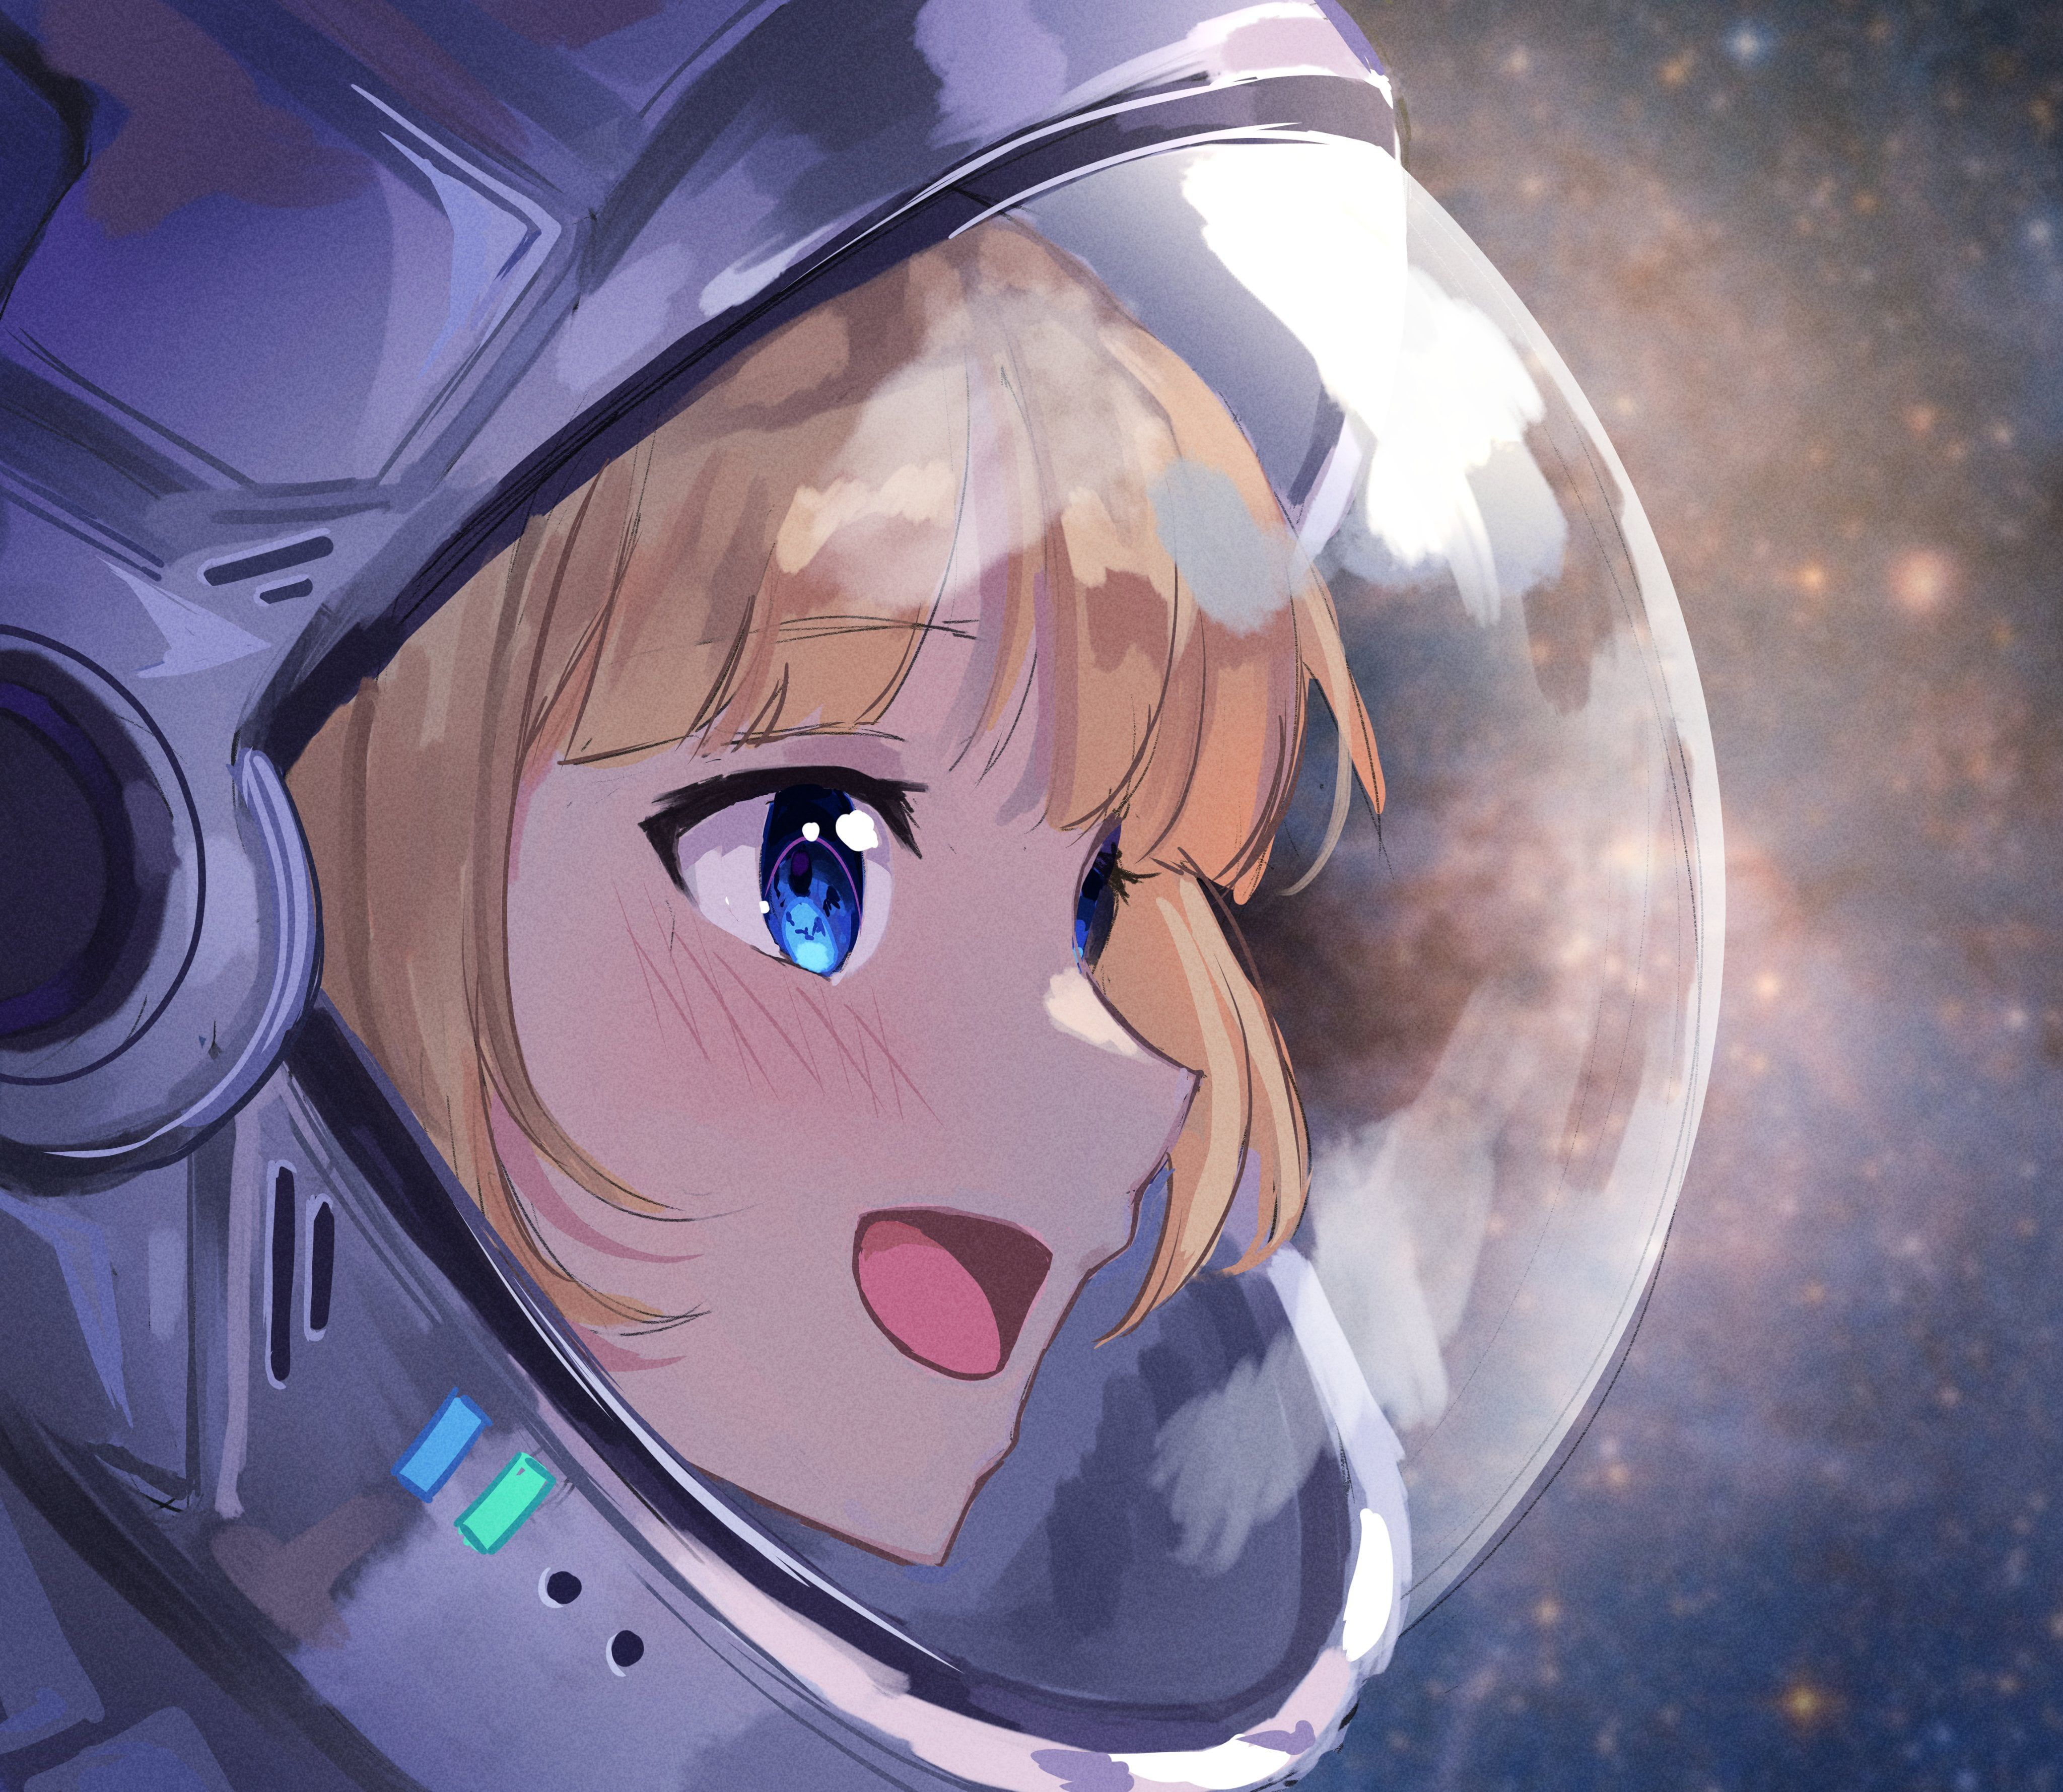 HD wallpaper: anime girls, Hololive, Watson Amelia, space suit, smiling, blue eyes